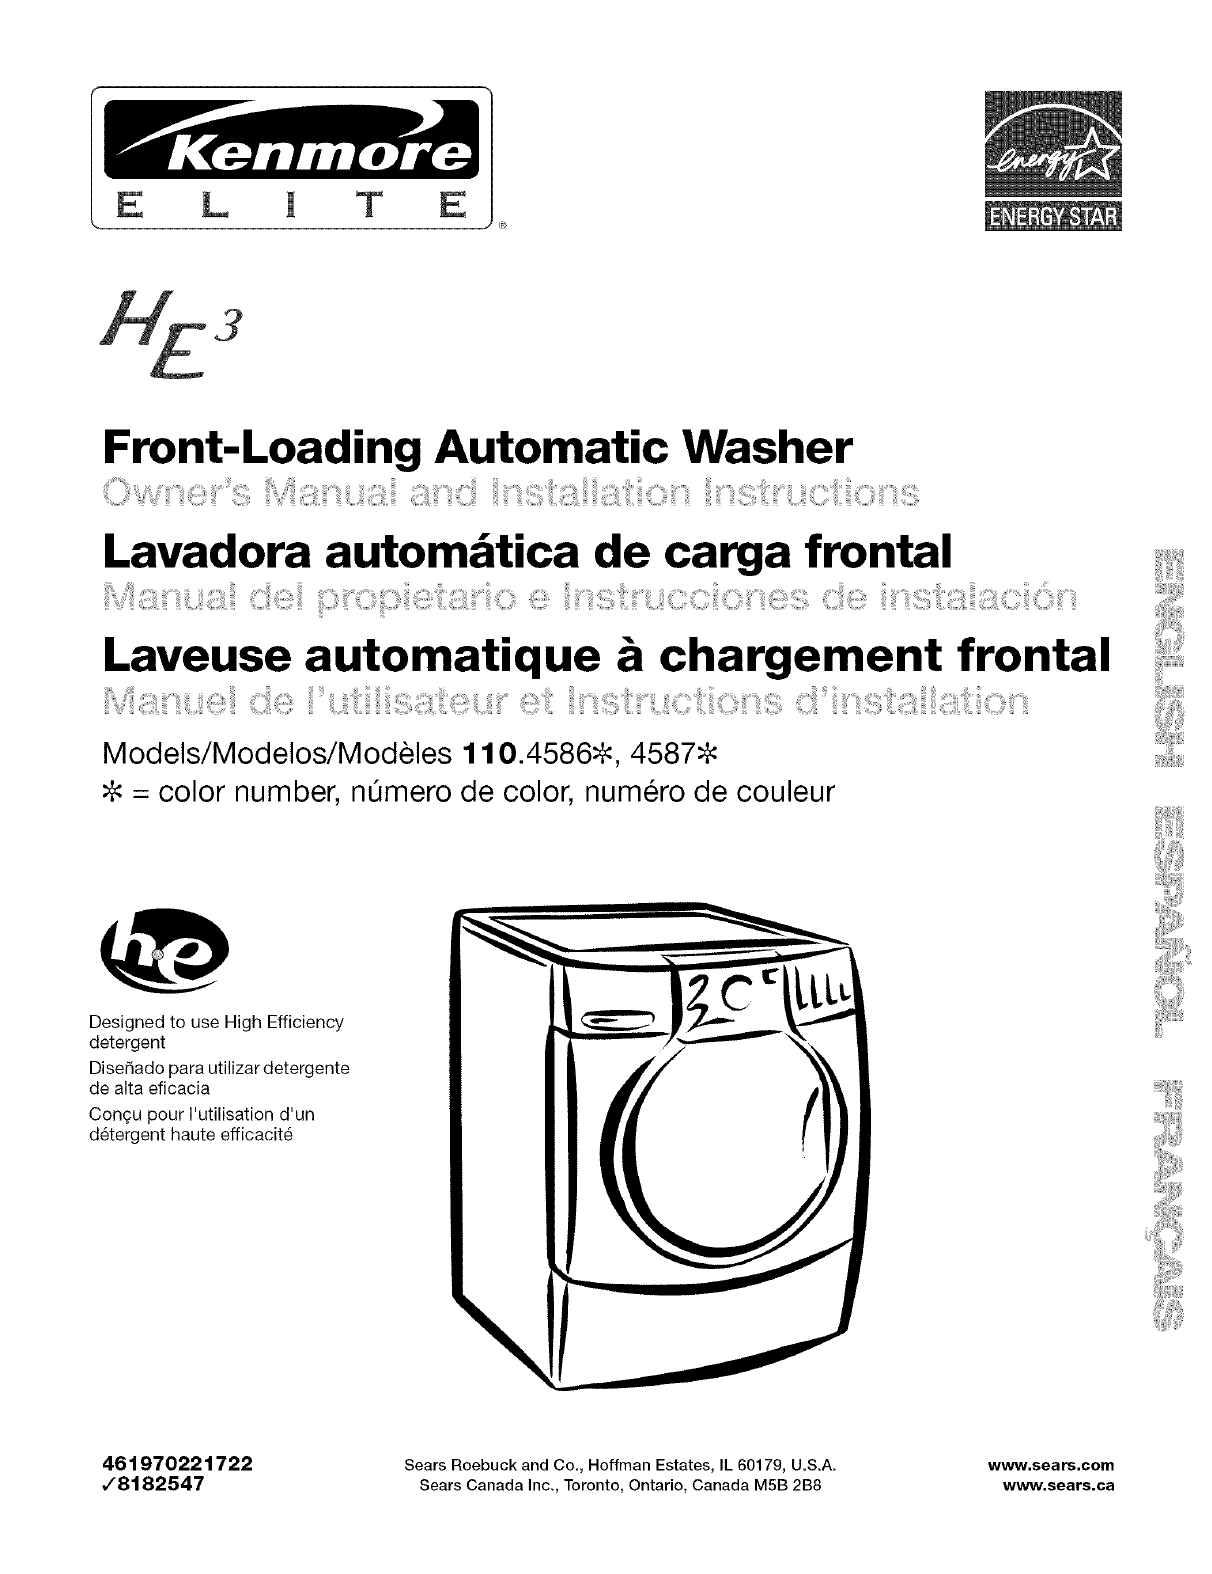 Sears Washer And Dryer Canada Kenmore Washer 110 4587 User Guide Manualsonline